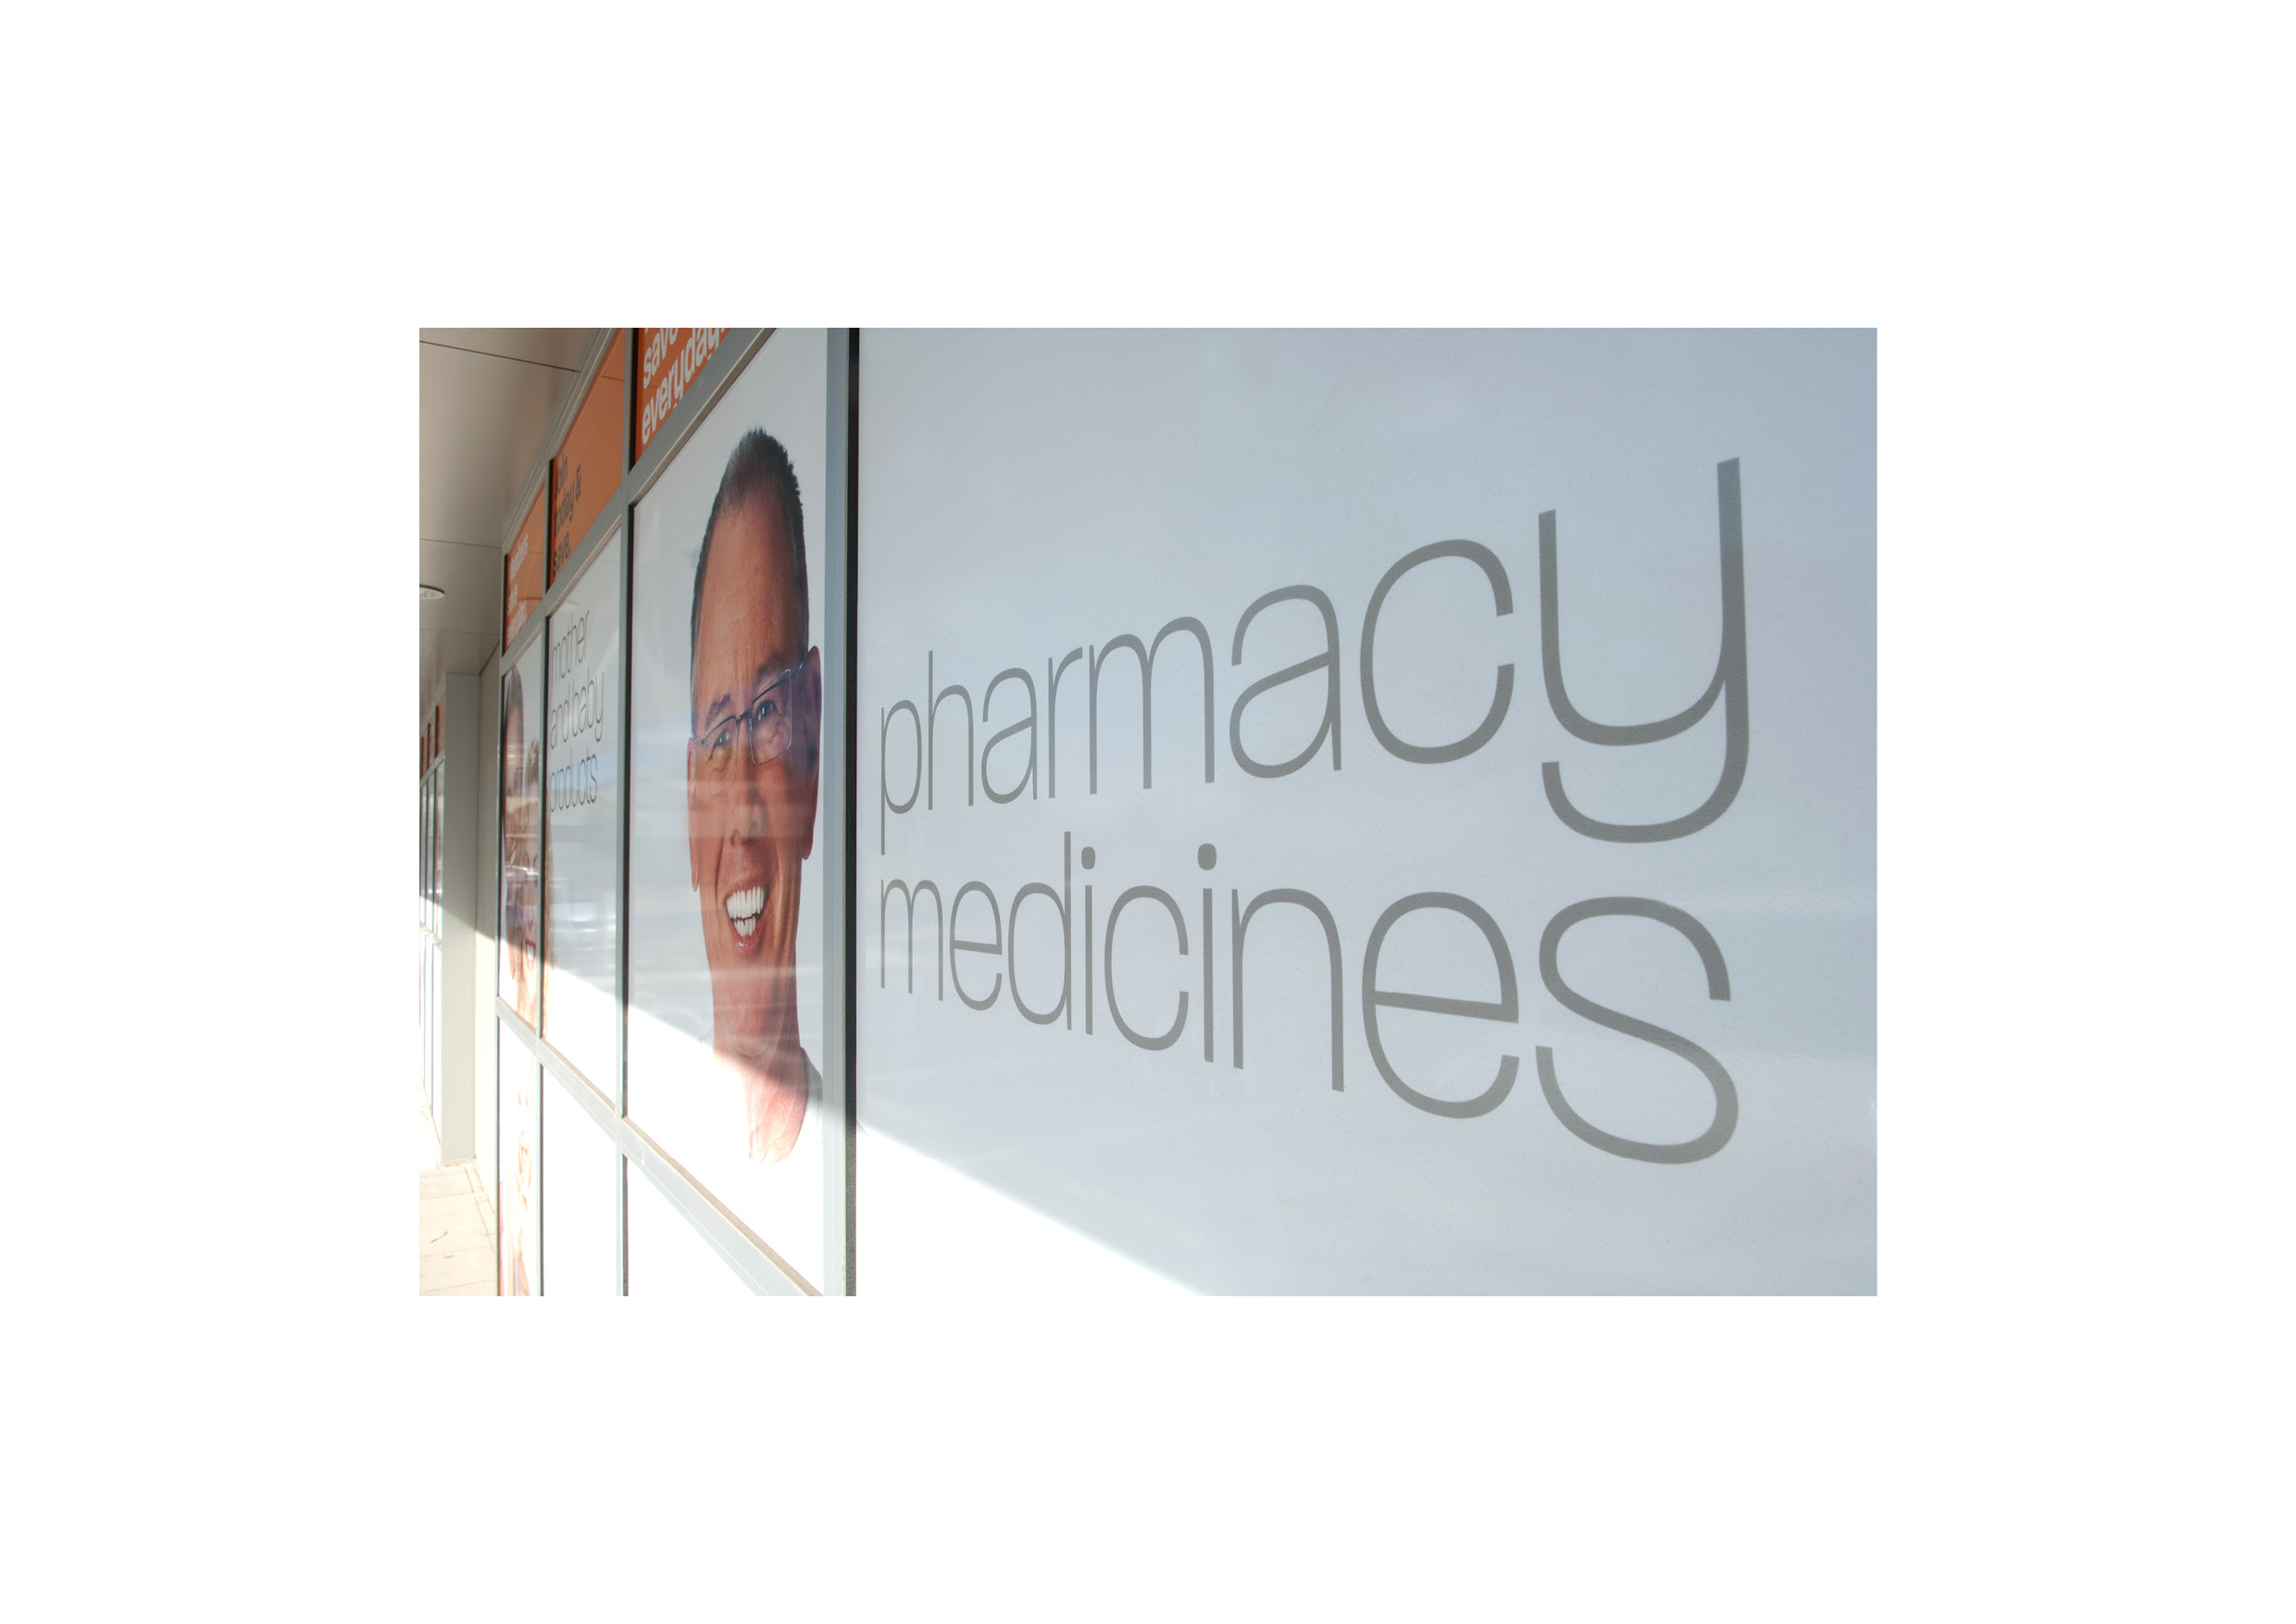 NATIONAL PHARMACIES WINDOWS REFURB_FA8